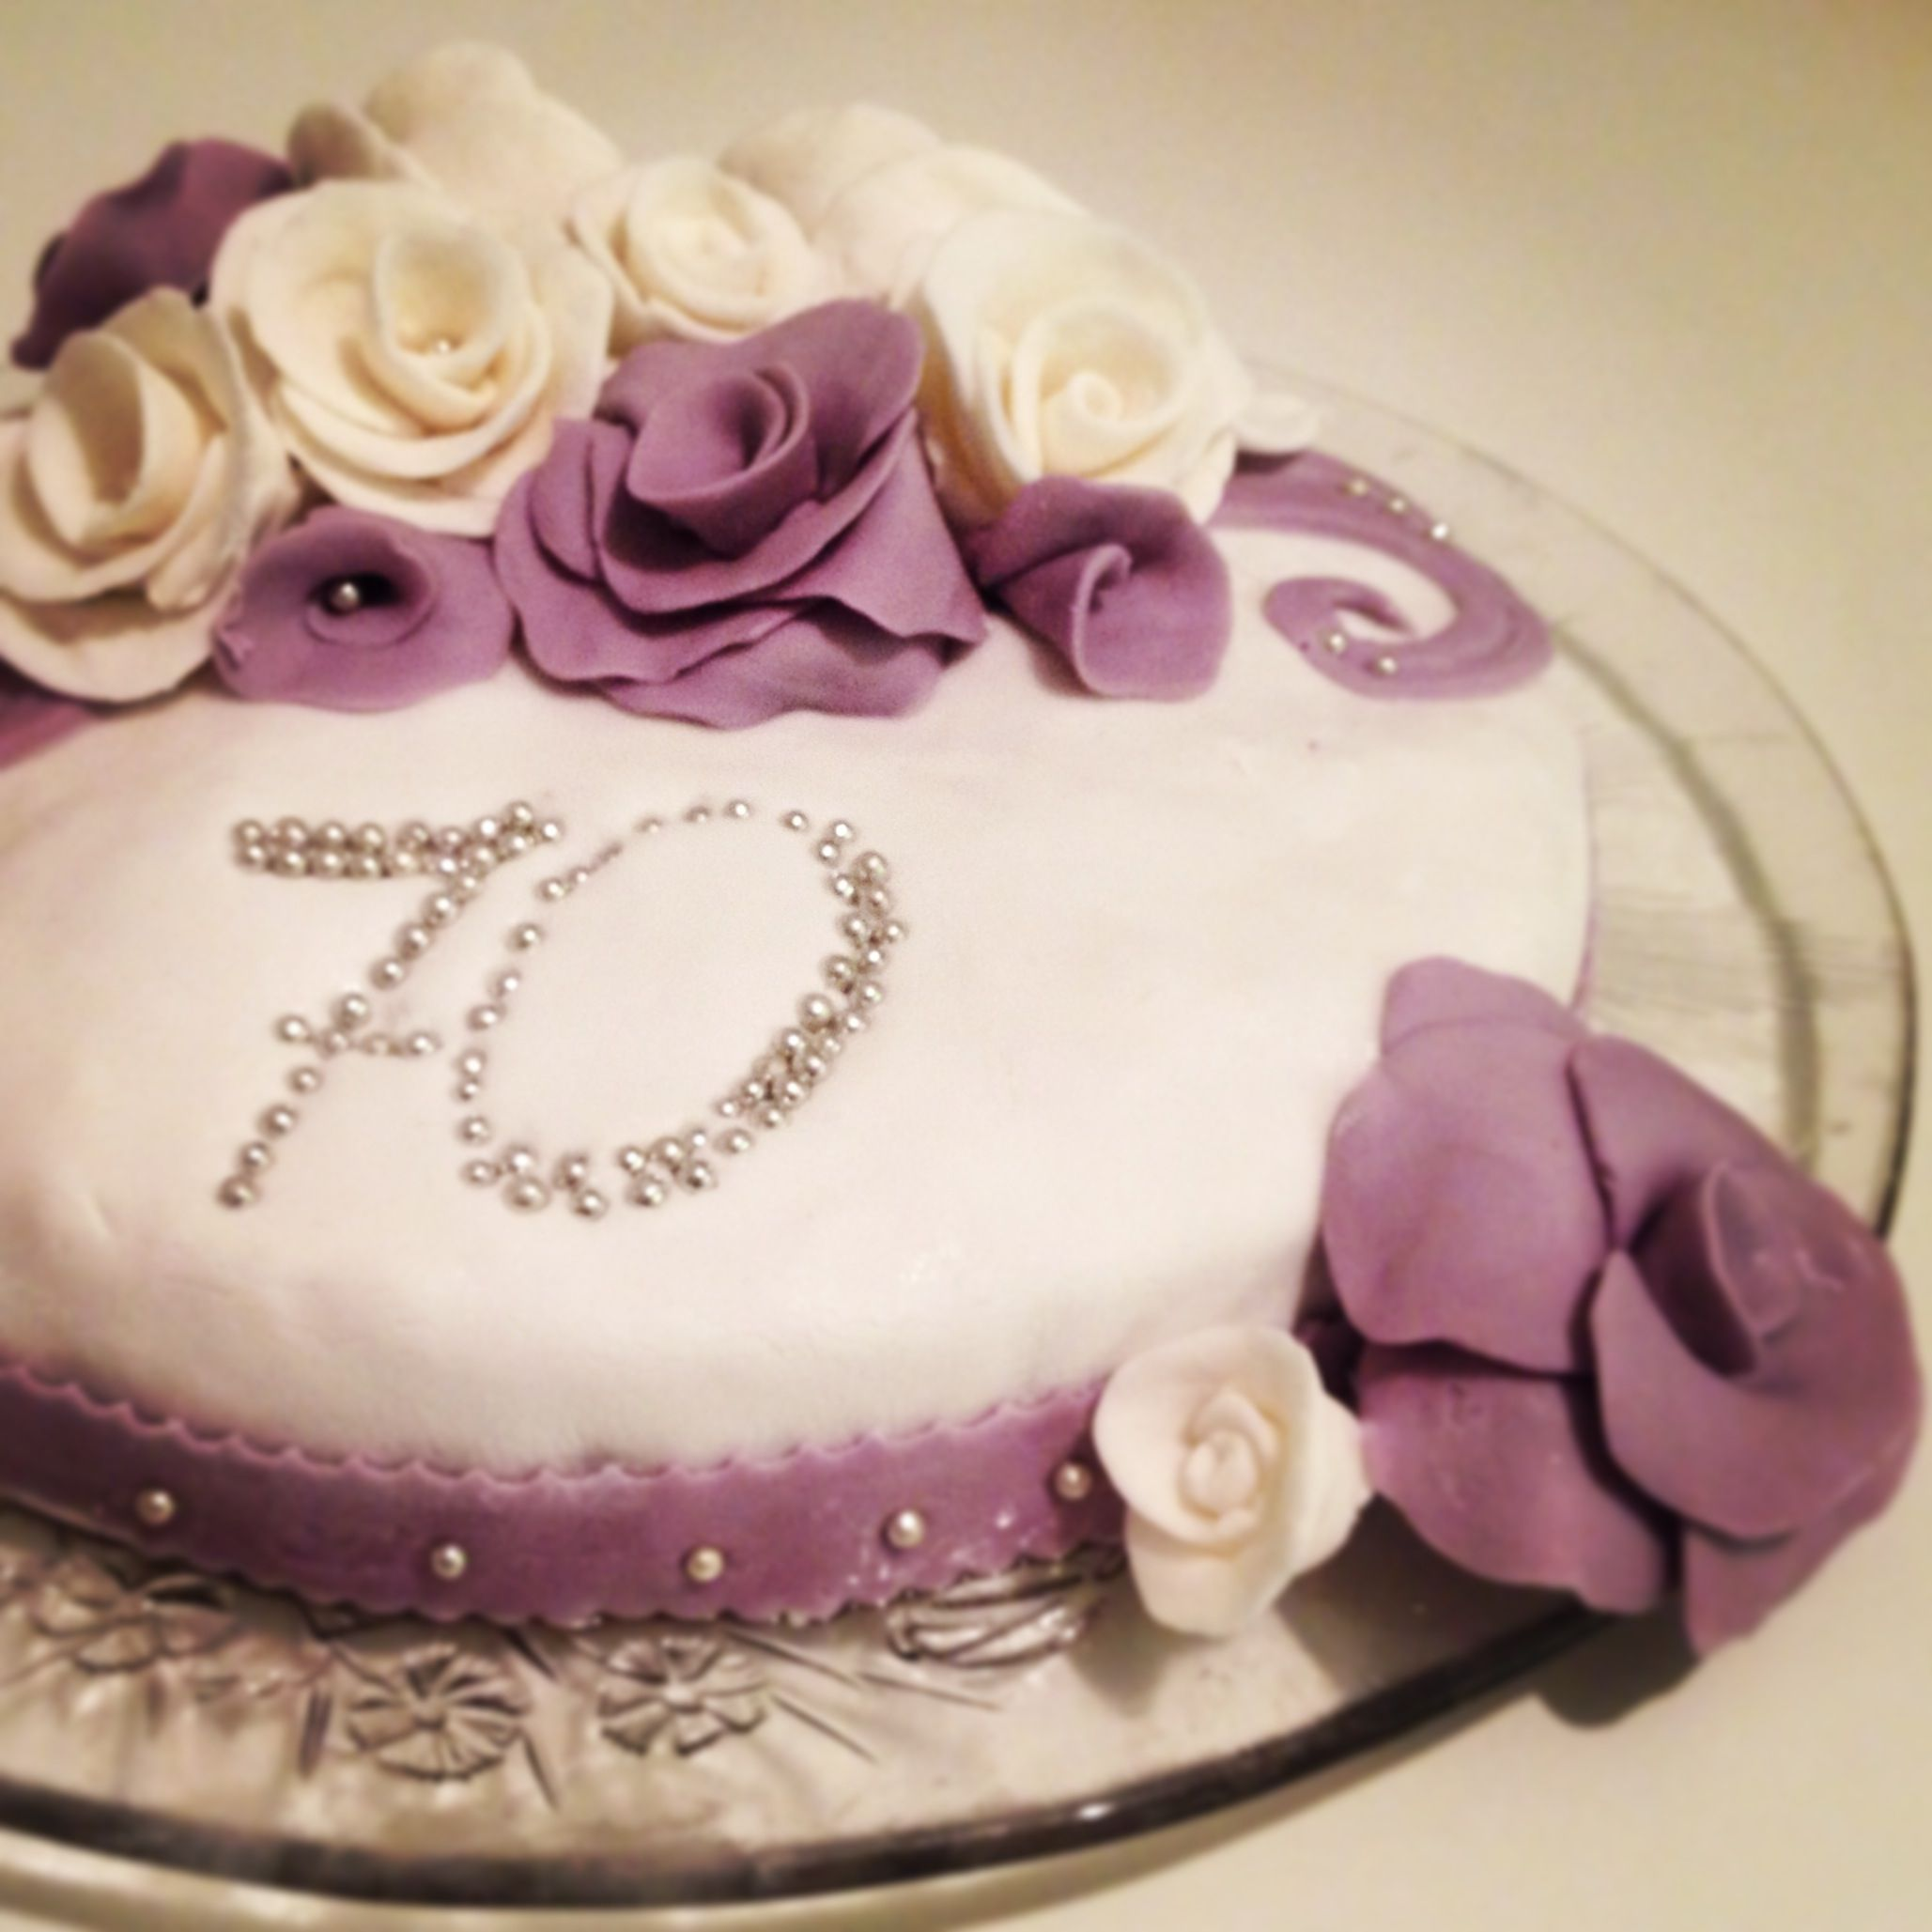 My first cake with design an idea for the mothers birthday